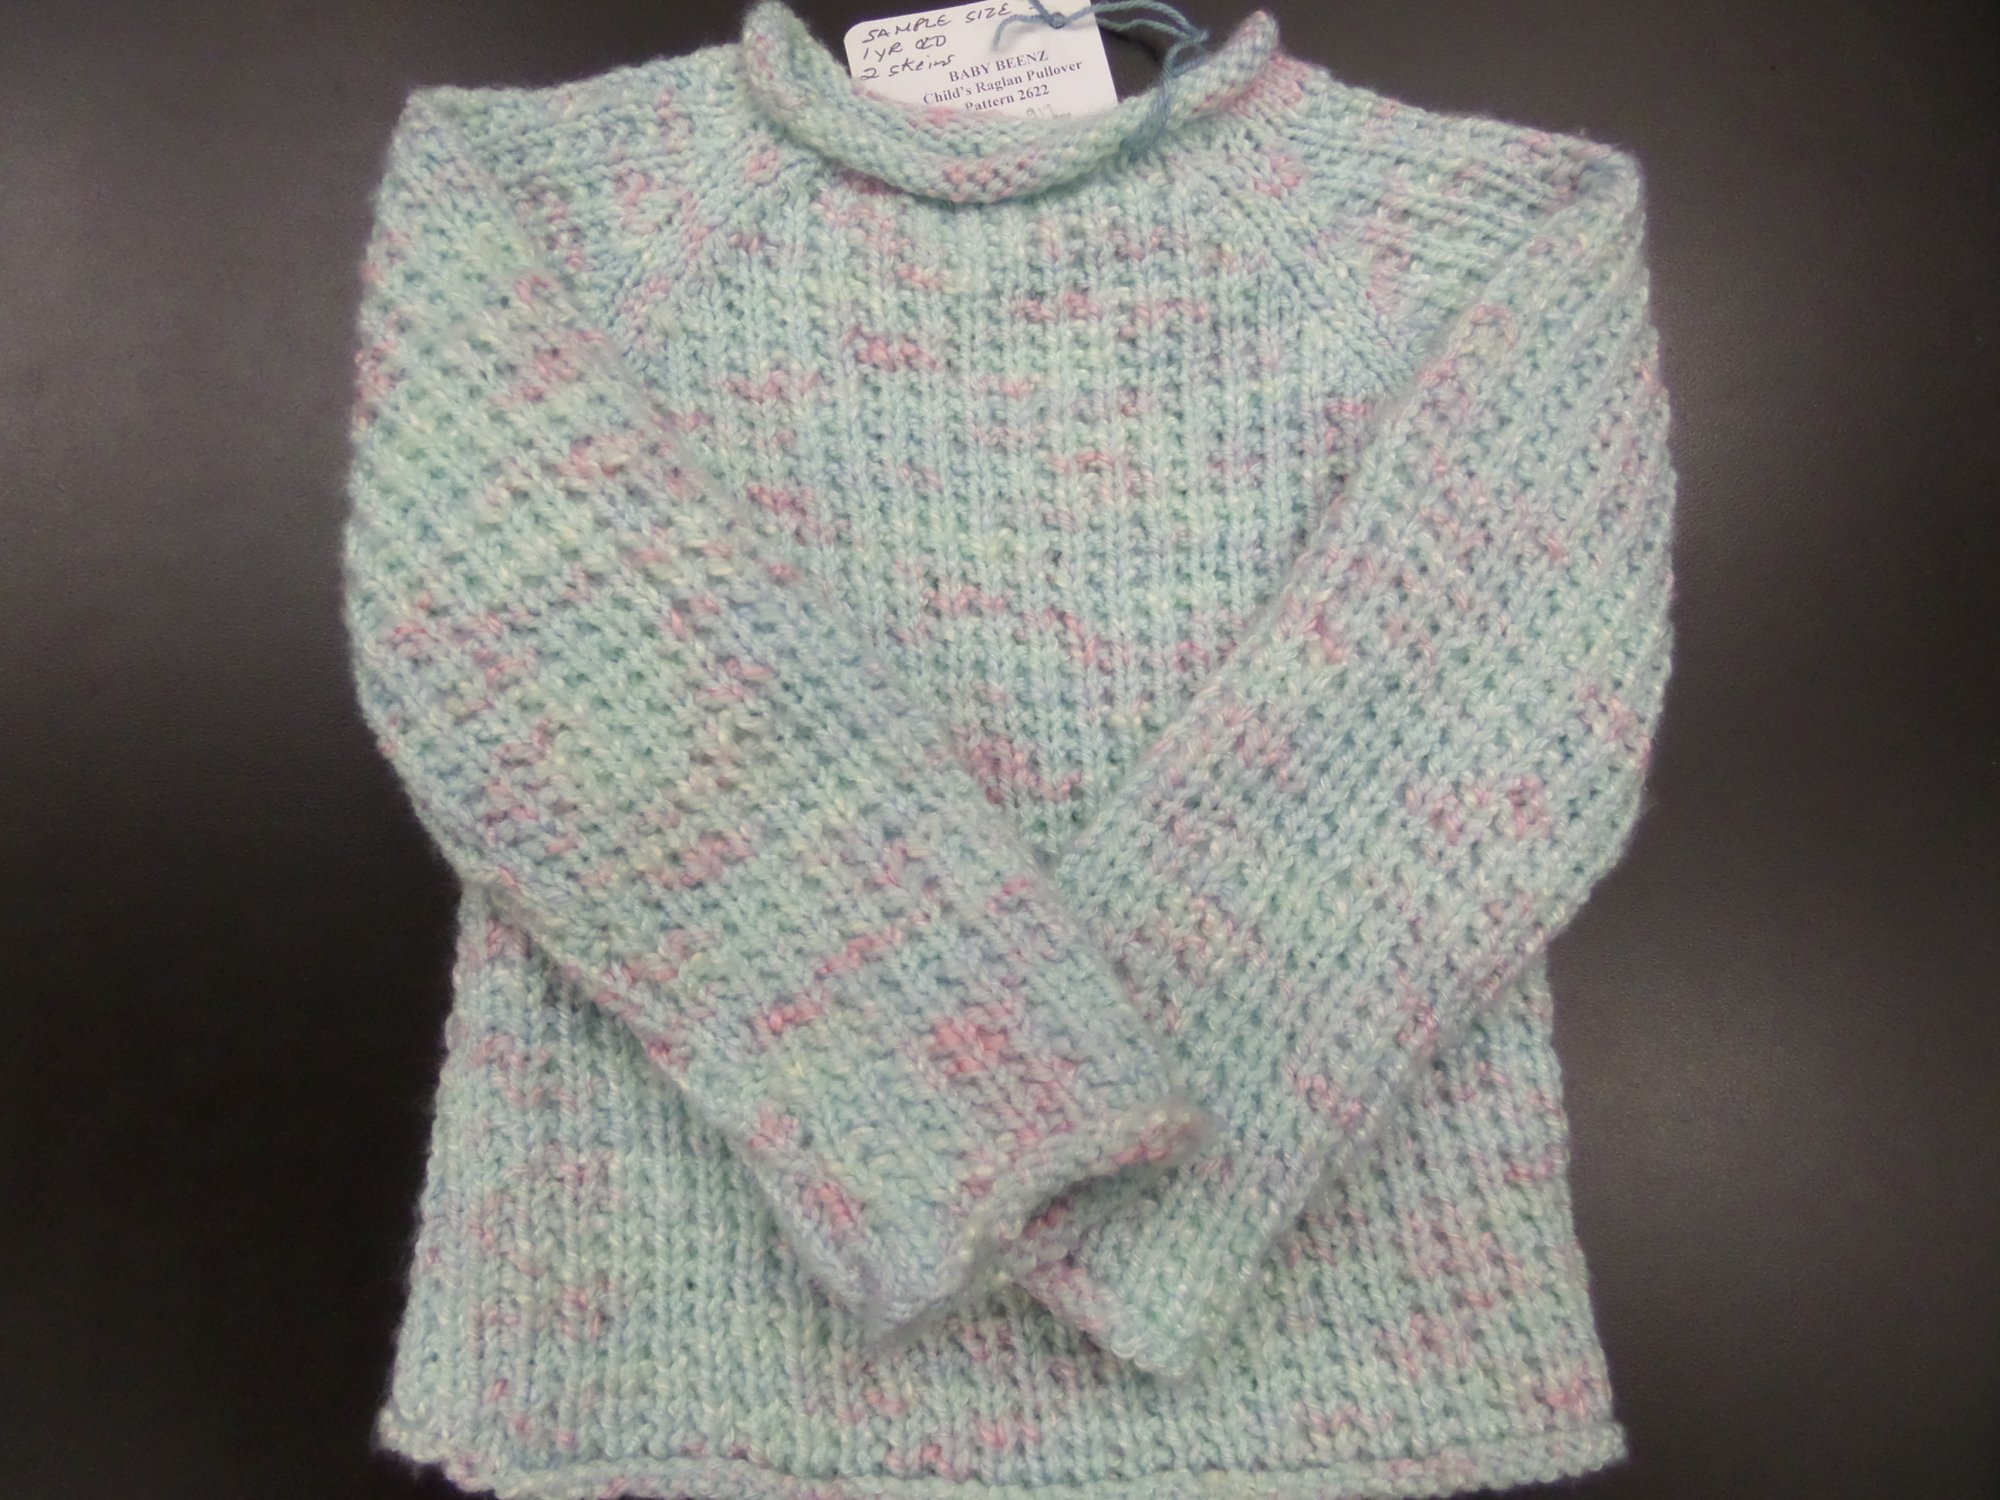 Child's Raglan Pullover model in Baby Beenz from Plymouth